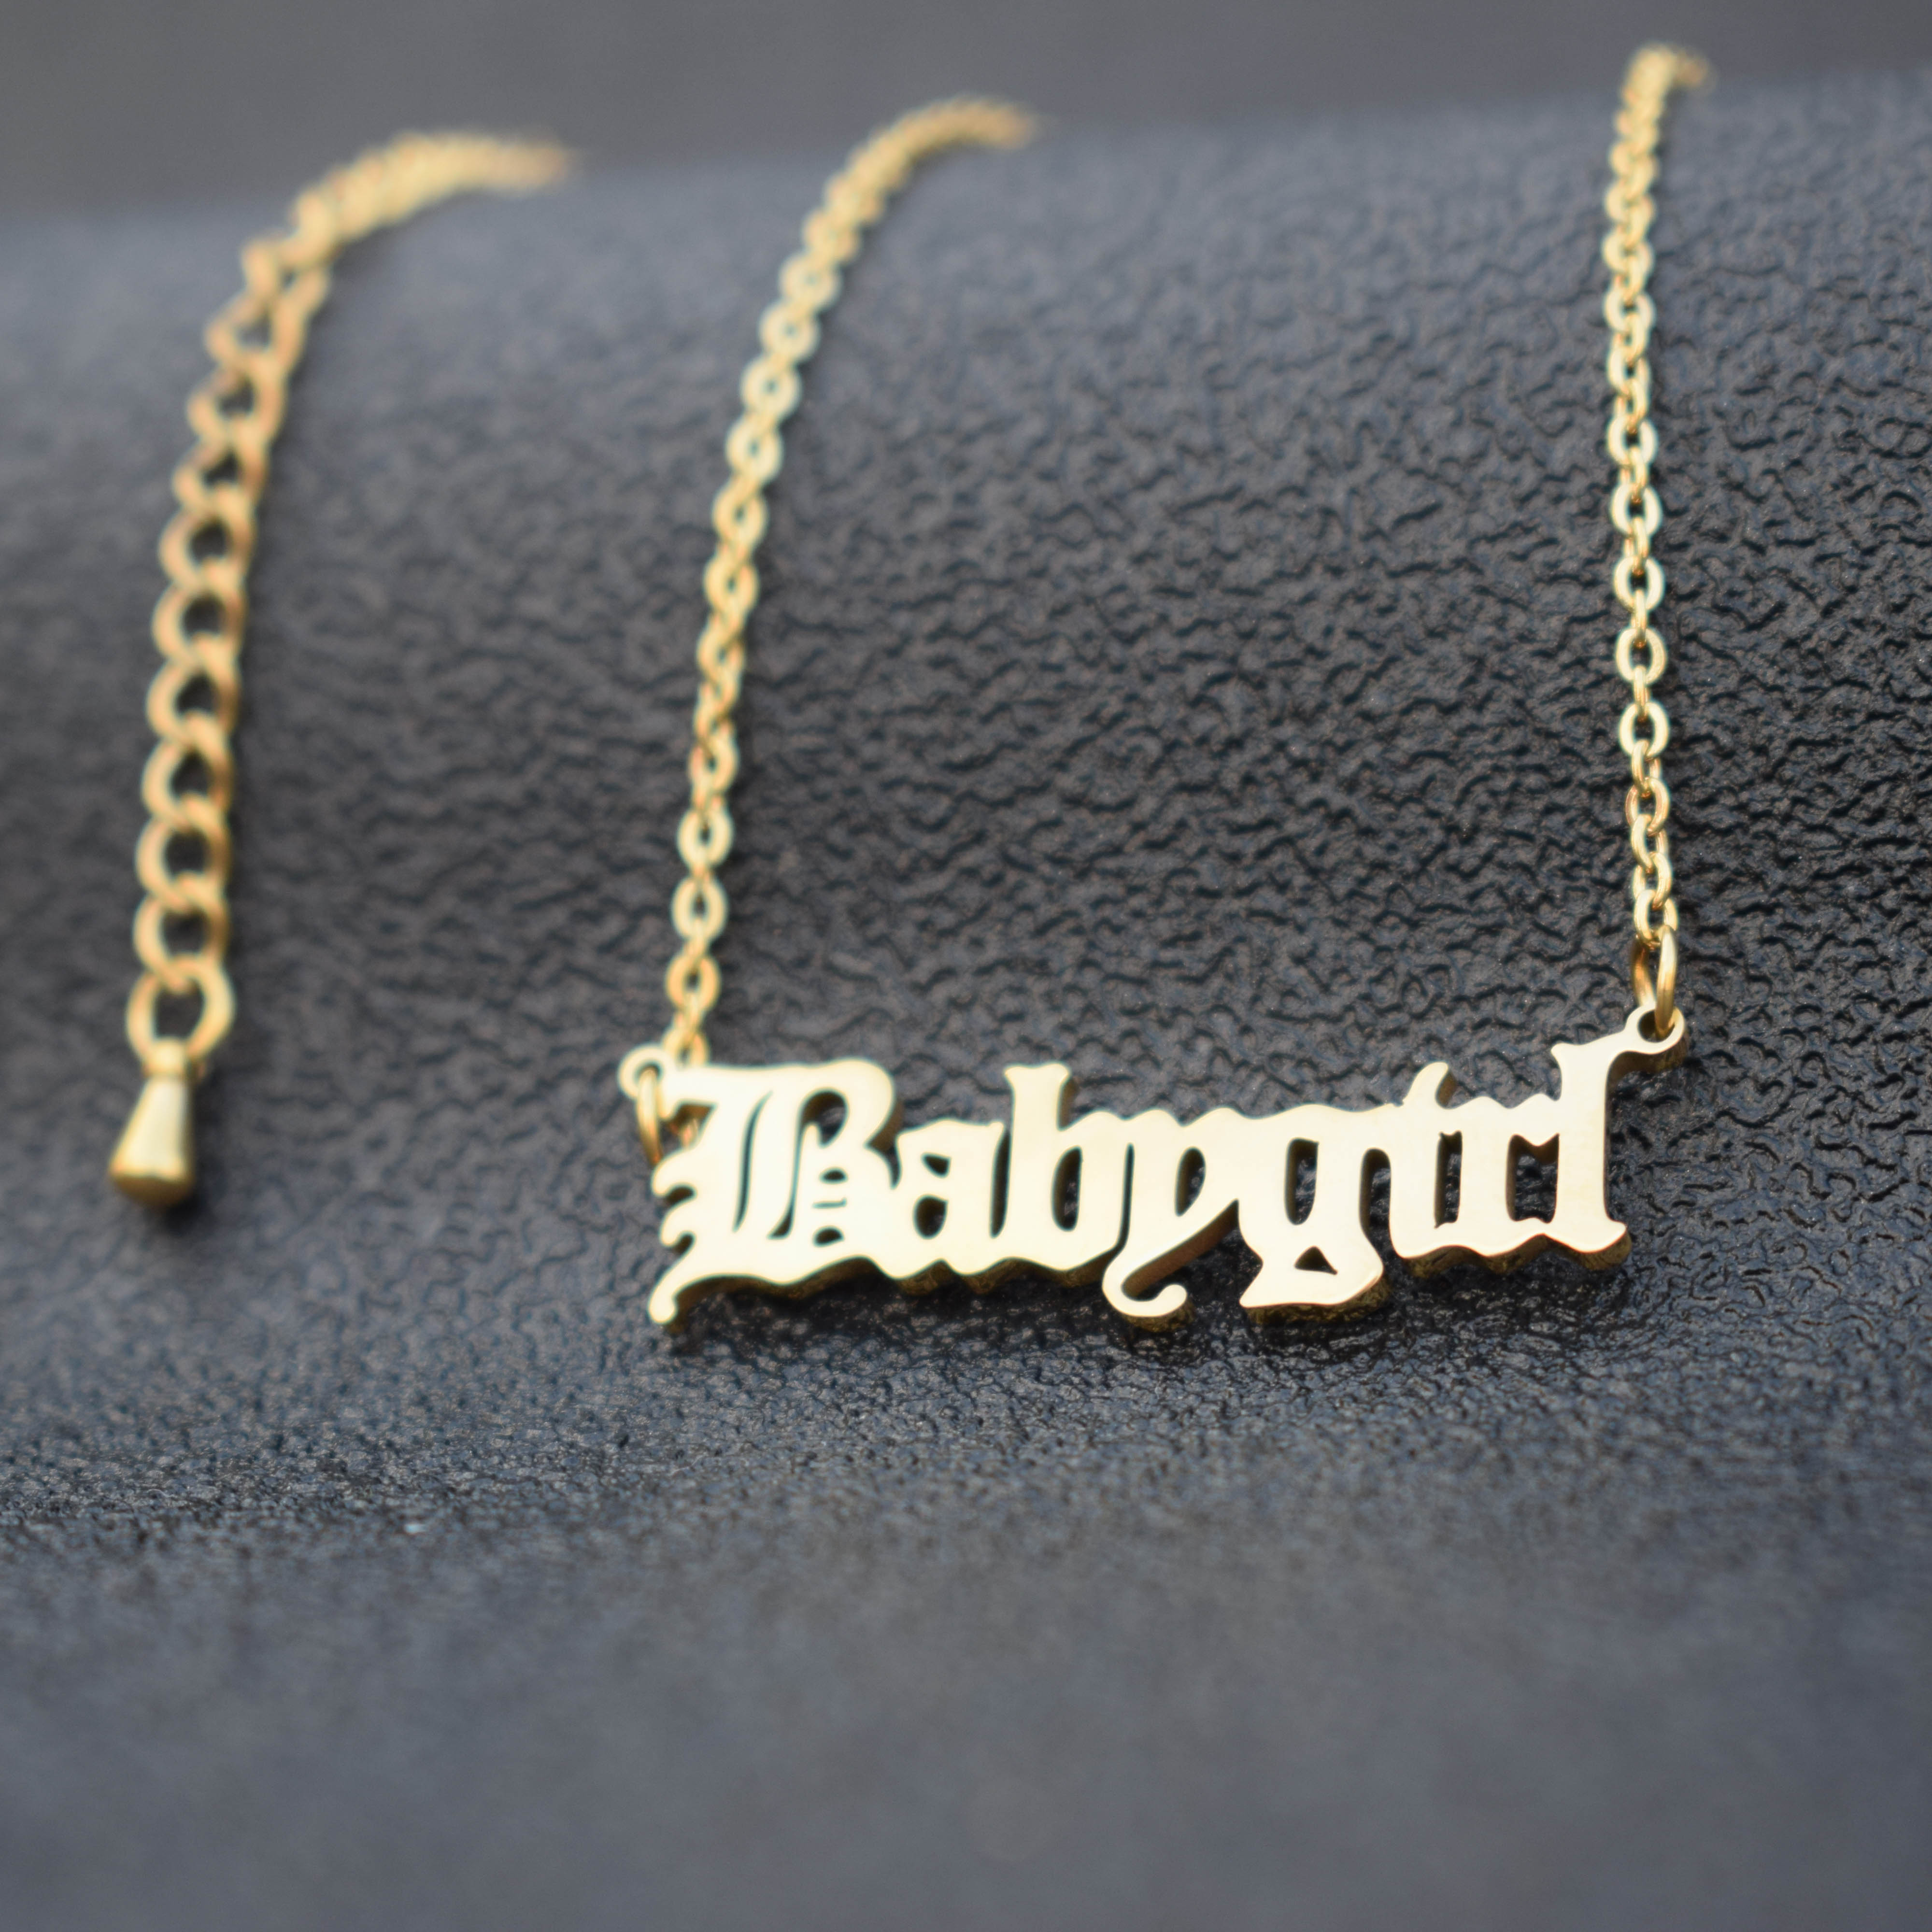 Customized Stainless Steel Personalized Jewelry Babygirl Name Pendant Necklace For Women Birthday Gift